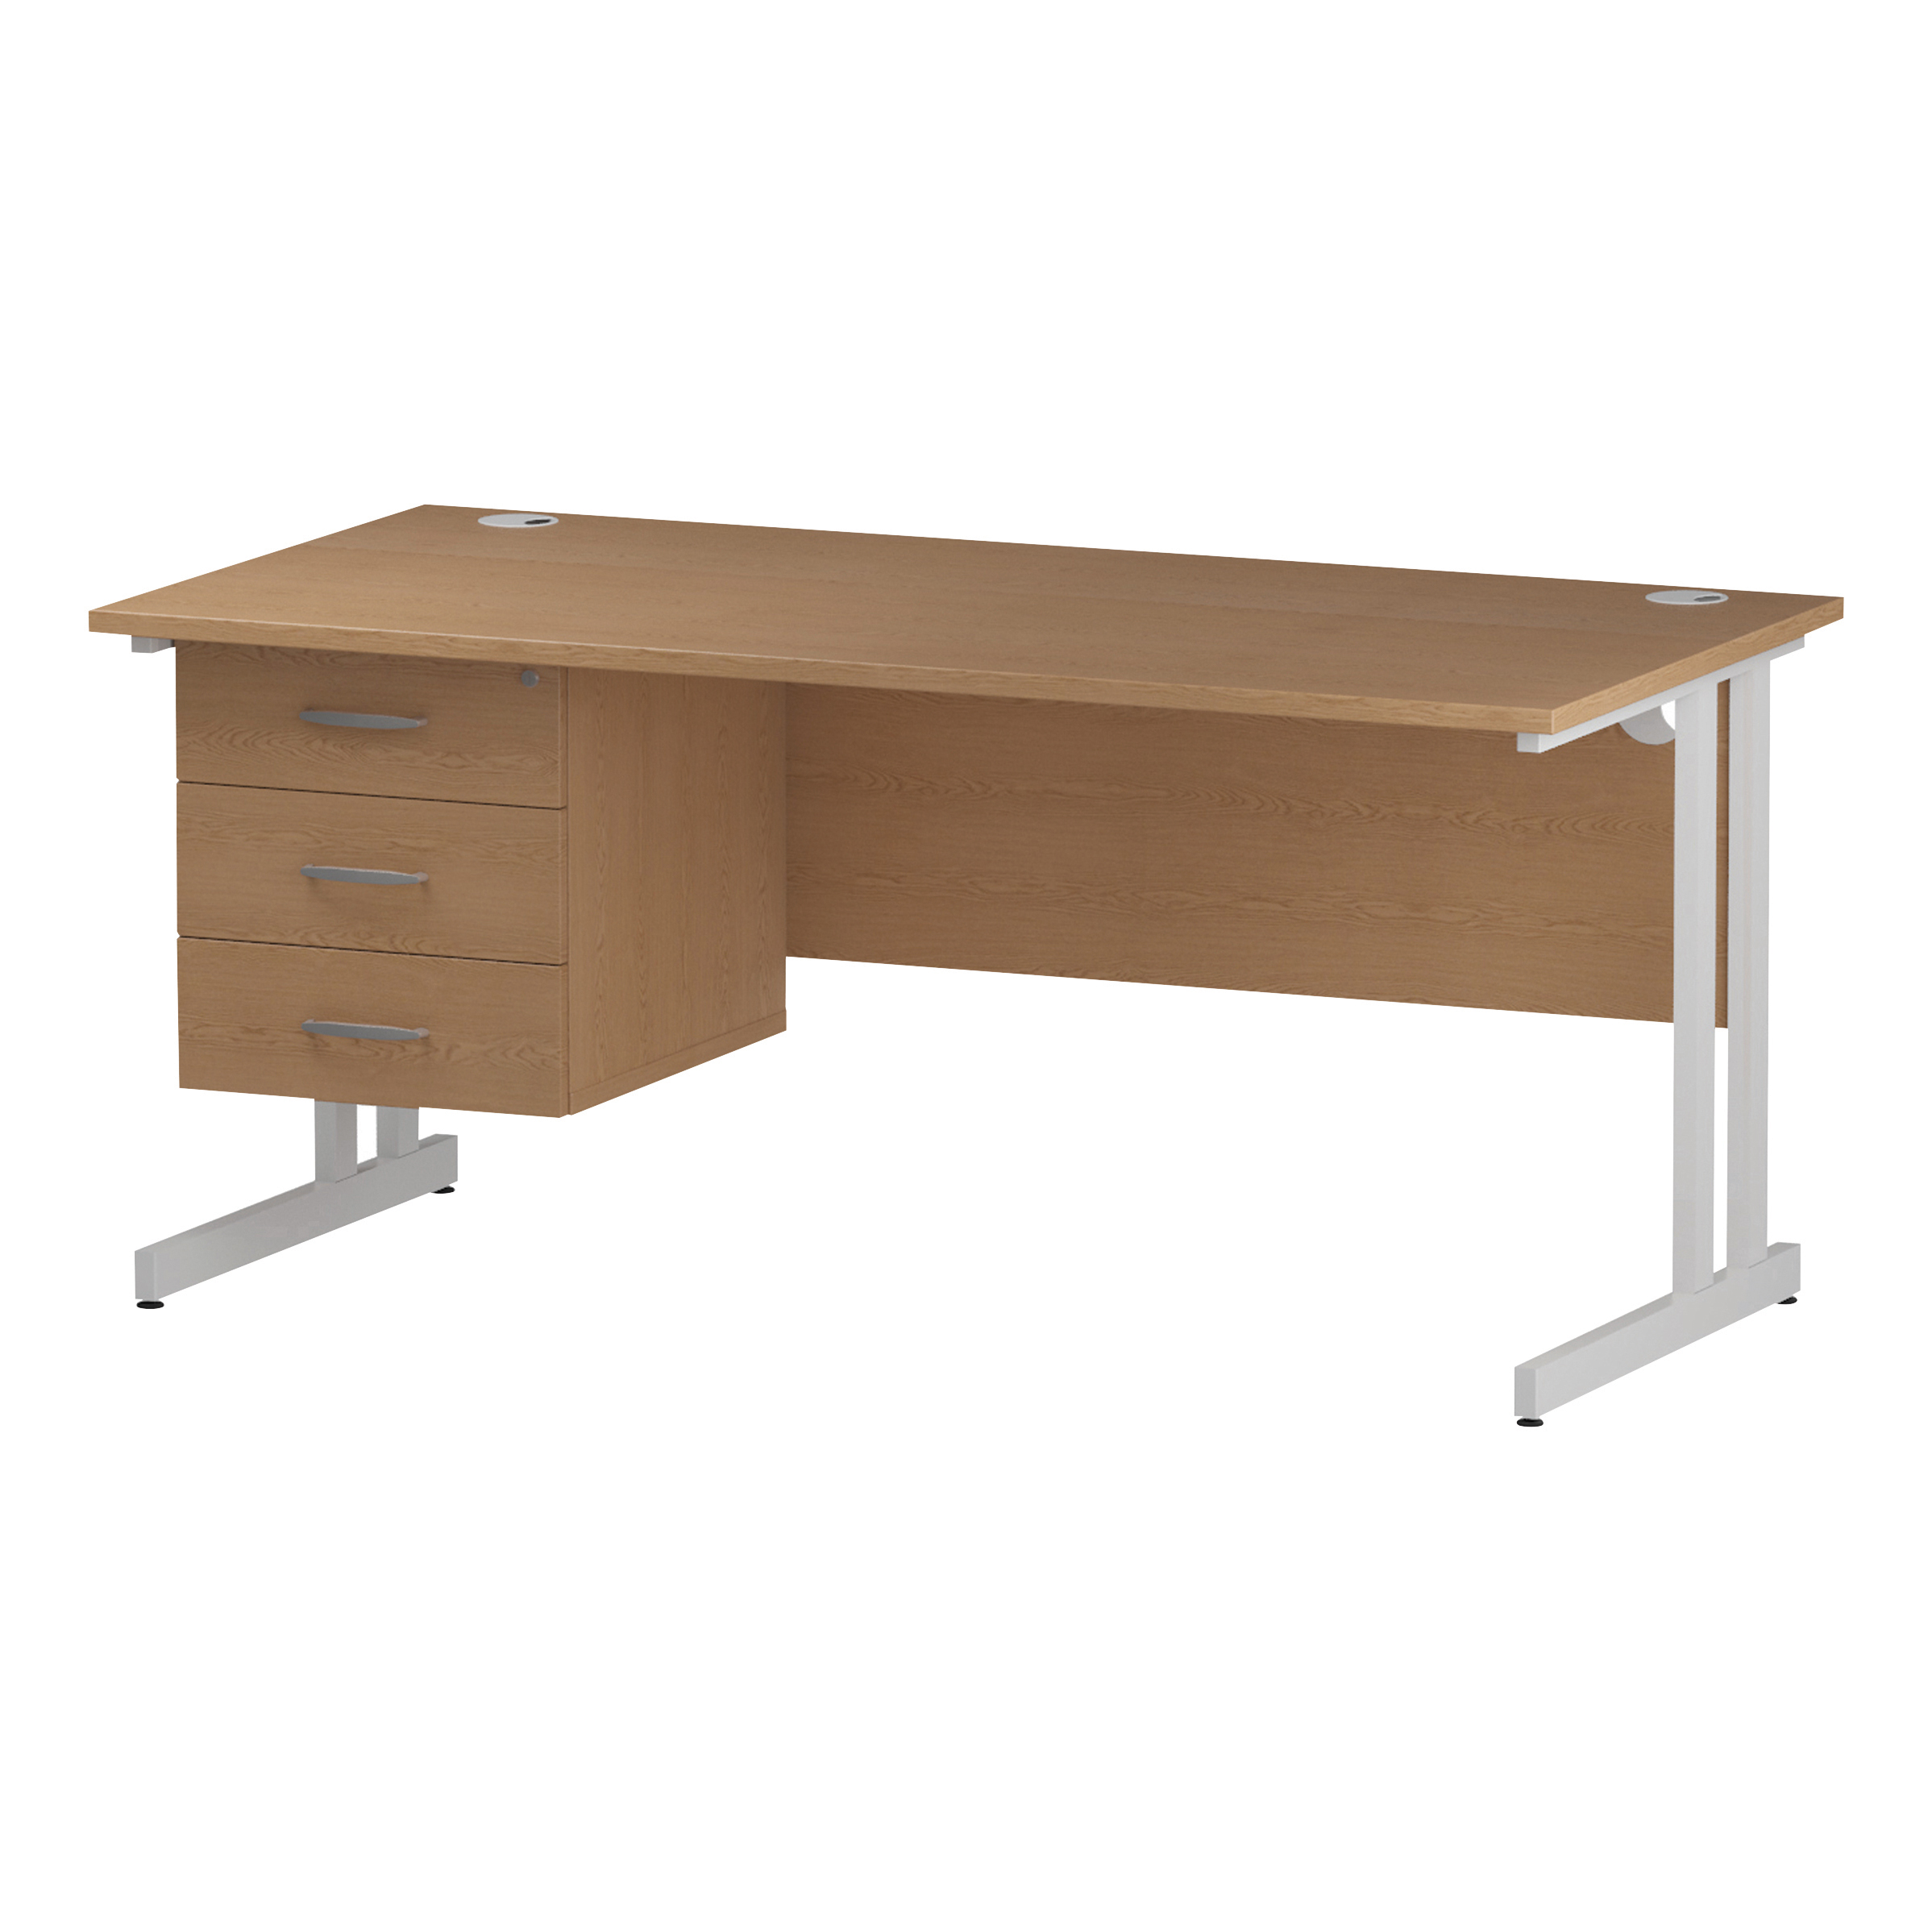 Trexus Rectangular Desk White Cantilever Leg 1600x800mm Fixed Pedestal 3 Drawers Oak Ref I002671